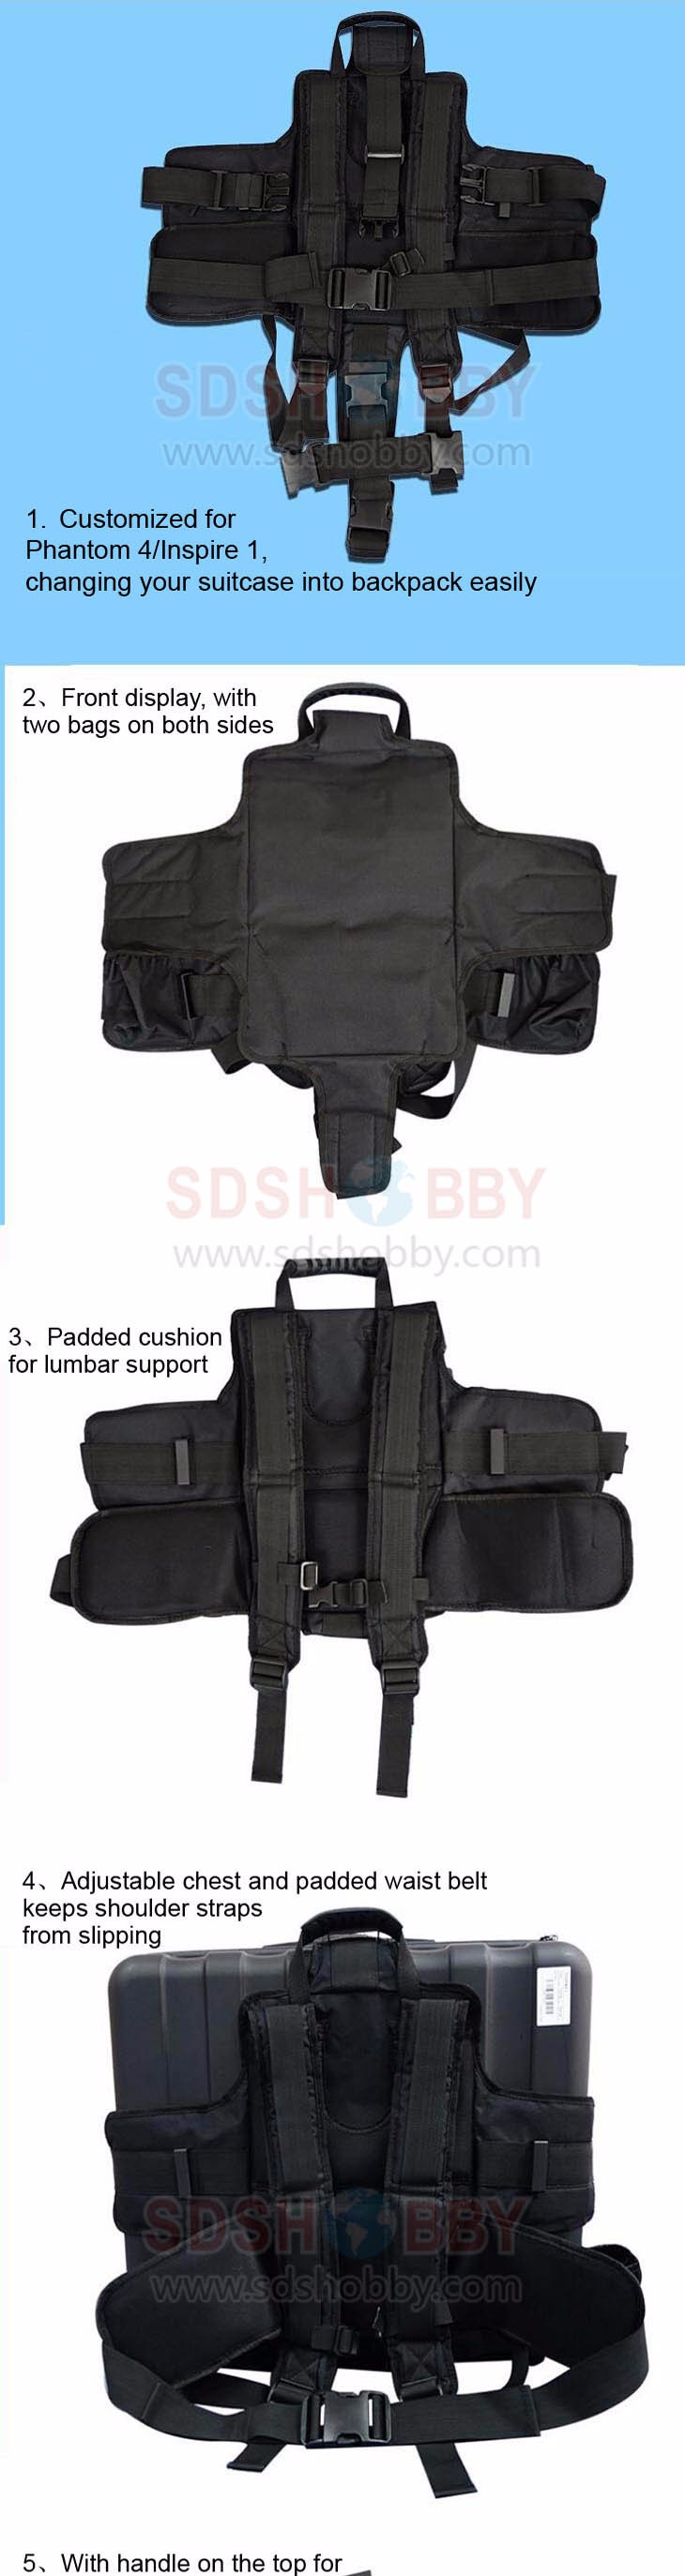 DJI Carrying Backpack Adapter Strap Belt Suitcase Shoulder Strap Carrying Case Strap for Phantom 4 Inspire 1